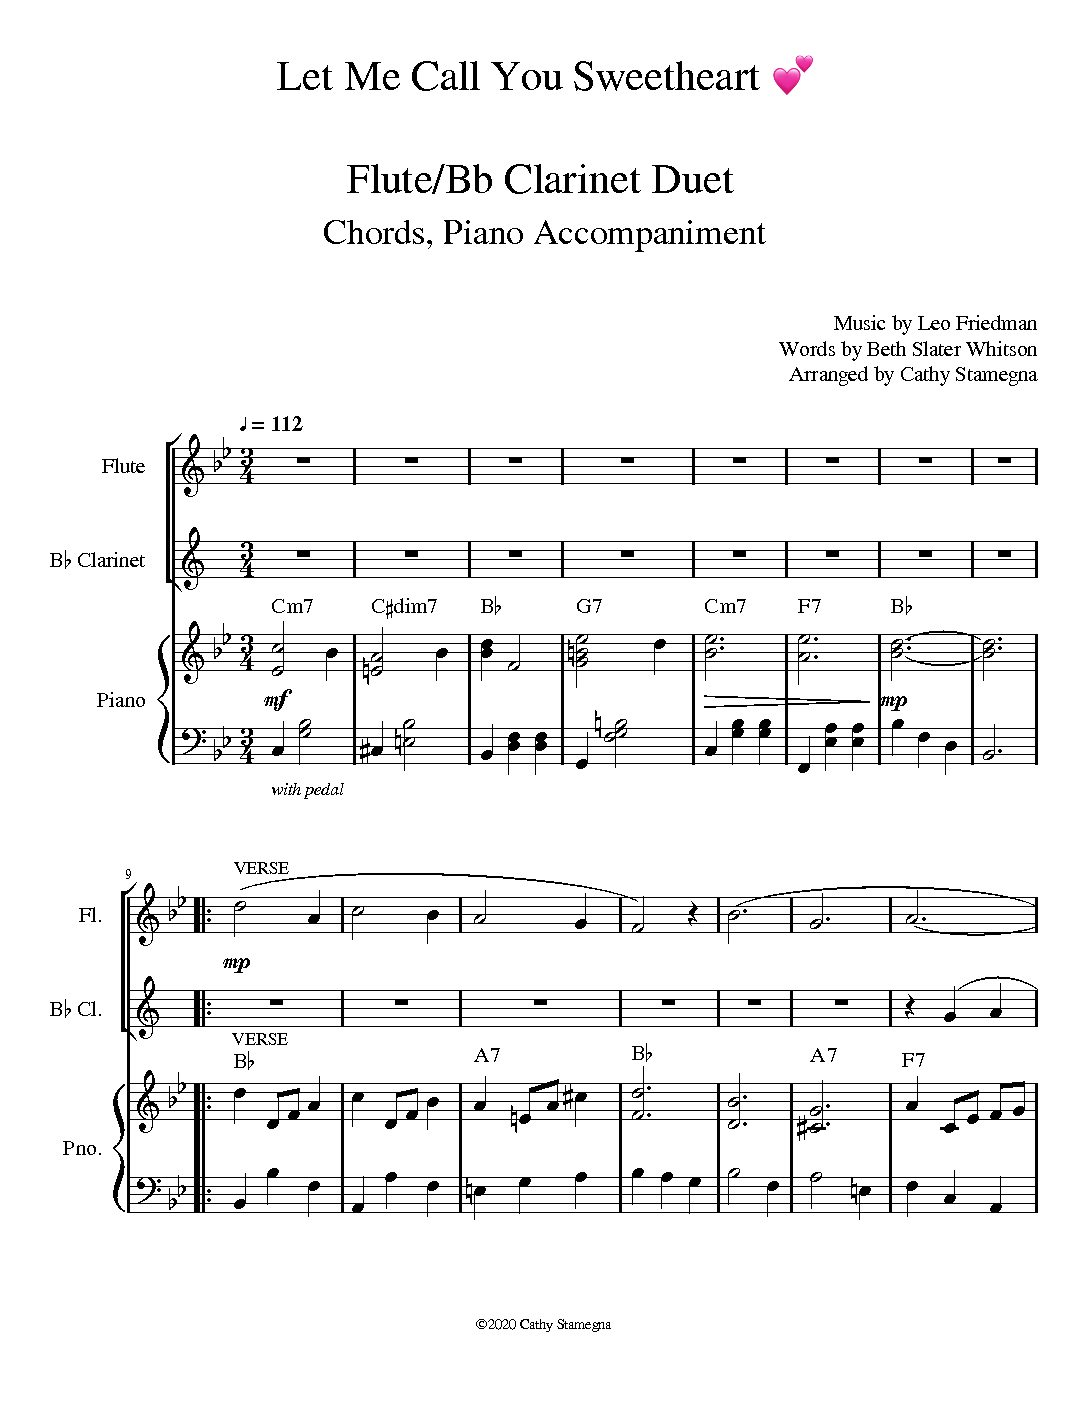 Let Me Call You Sweetheart (Woodwind Duet, Chords, Piano Accompaniment) for various woodwind combinations